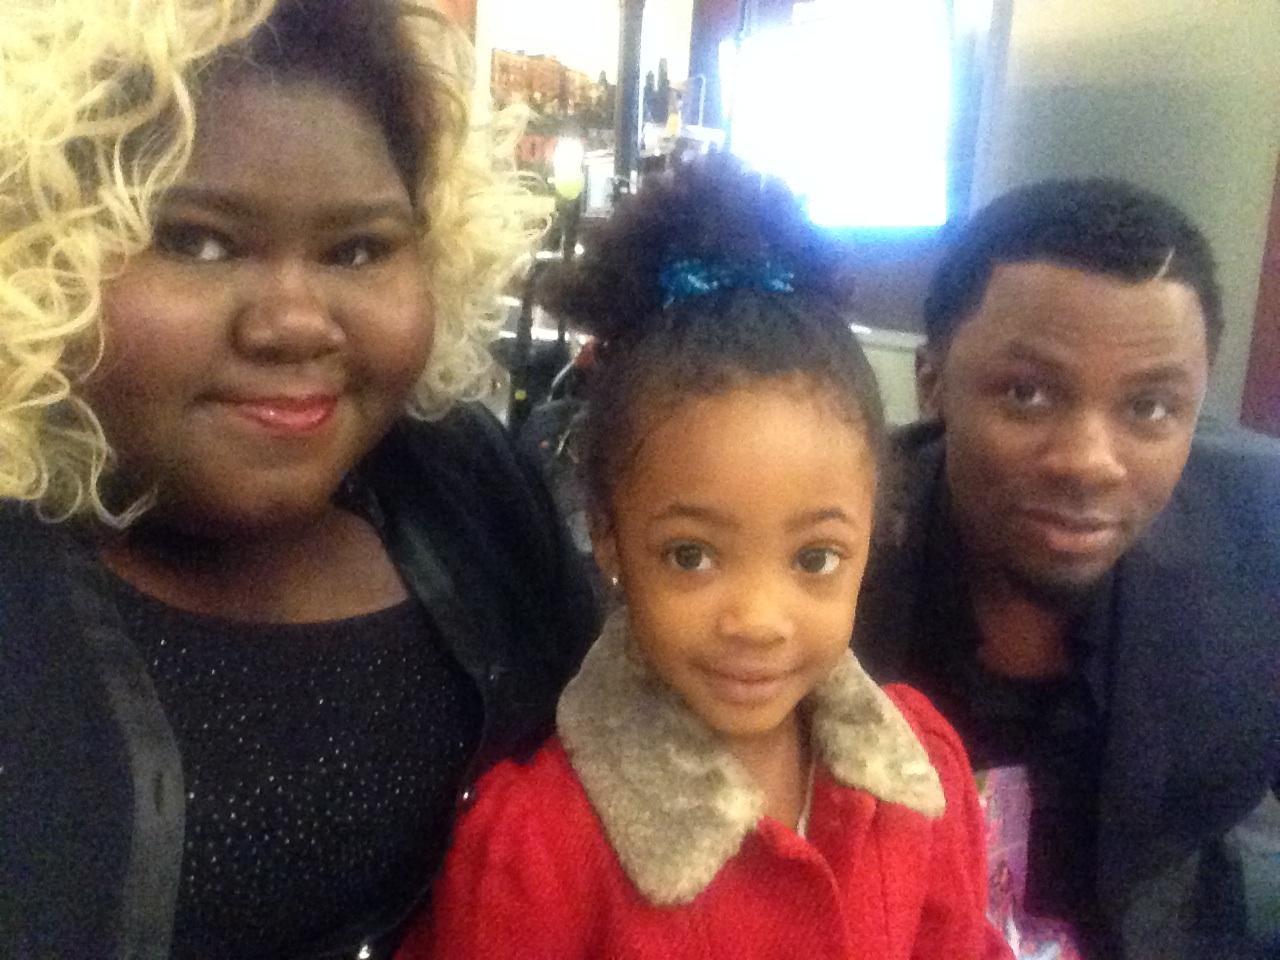 Leah Jeffires with actress, Gabby Sidibe who plays Becky on Empire, and  actor, Derek Luke who plays Malcolm on Empire.